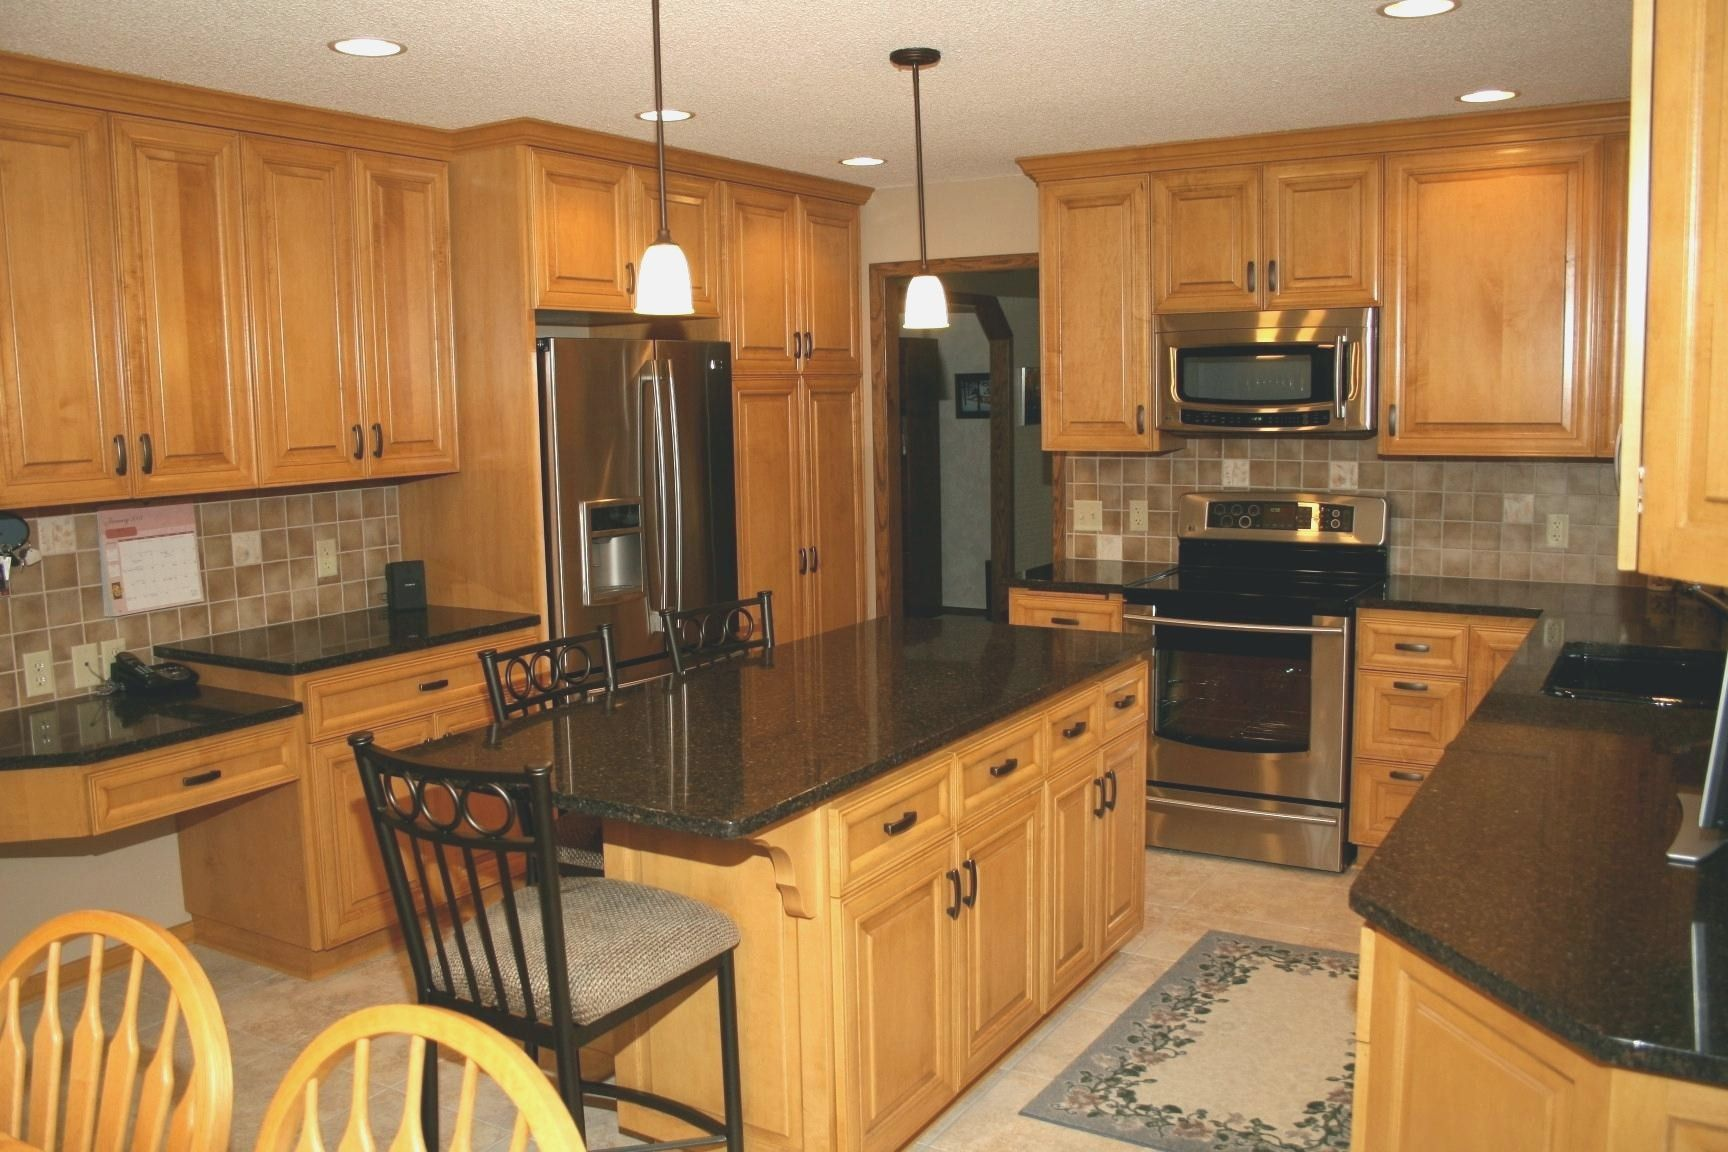 Kitchen paint colors with maple cabinets best kitchen paint colors